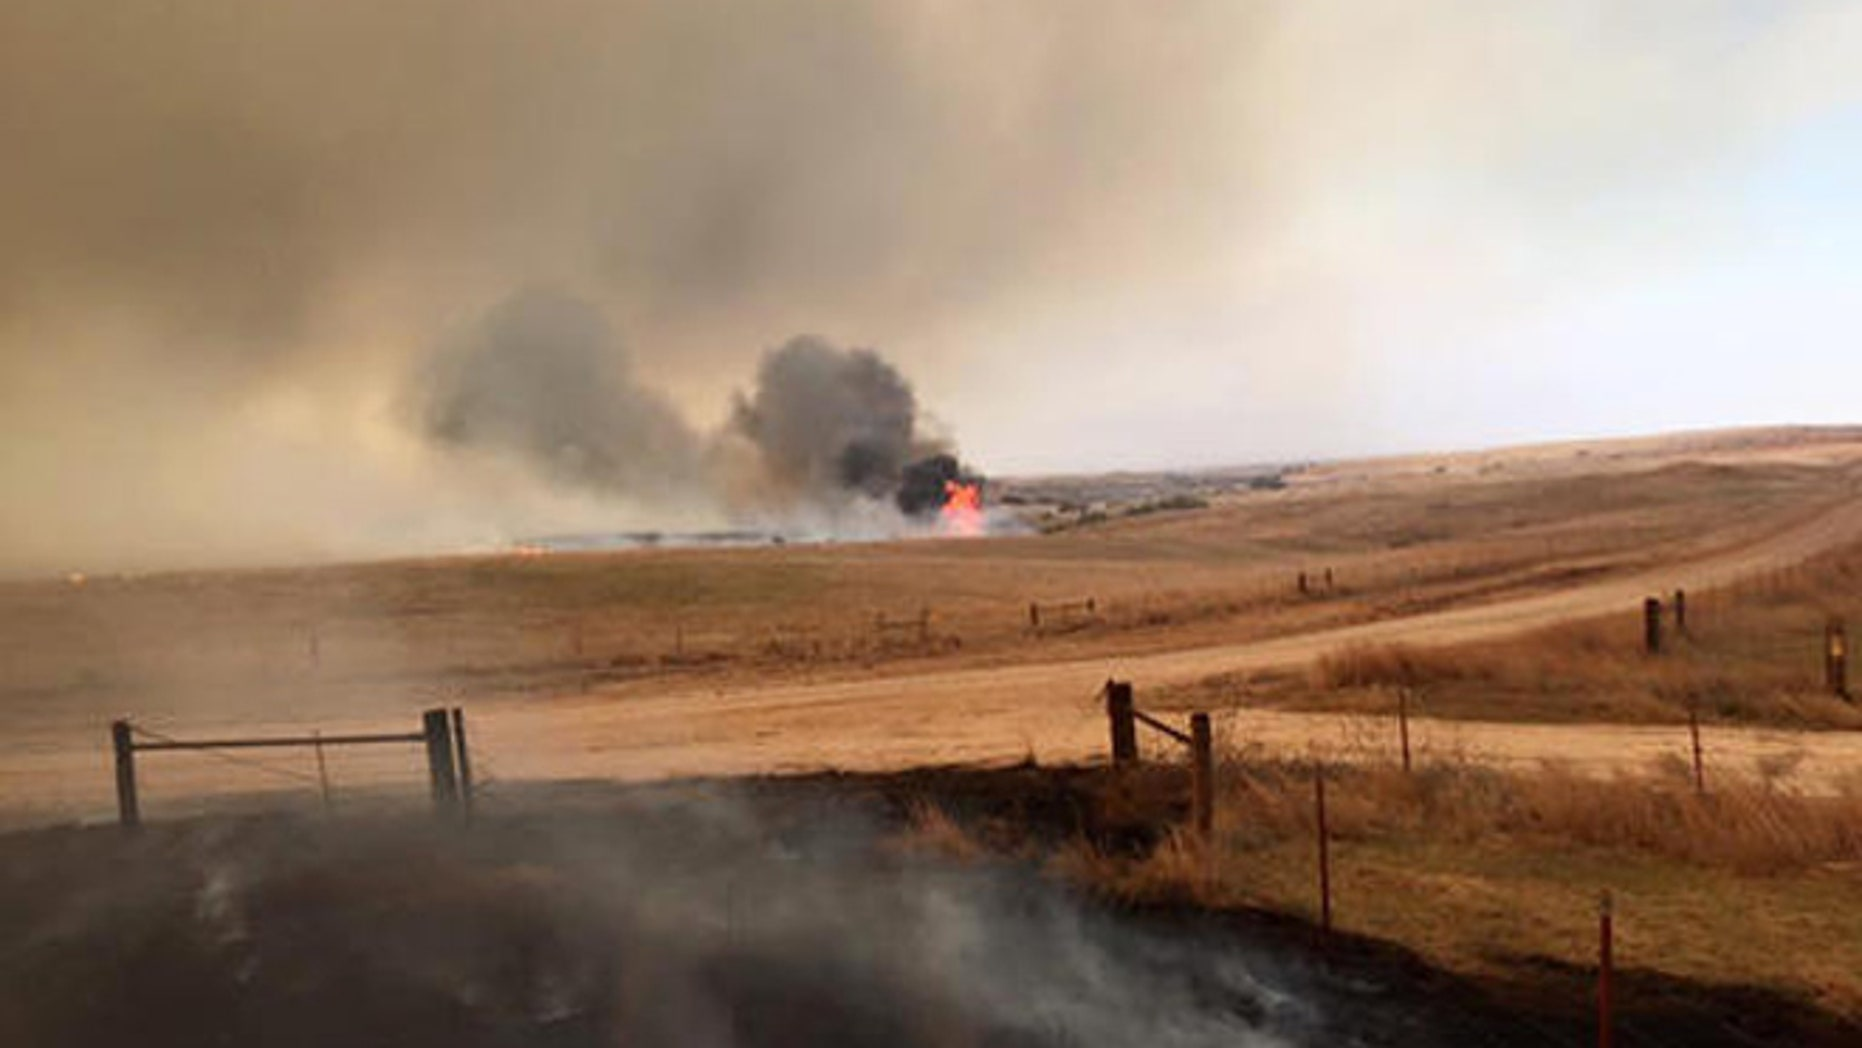 This April 5, 2016 photo provided by Landon Cates, volunteer firefighters from the Dewey County Task Force work a blaze southwest of Freedom, Okla. Oklahoma Forestry Services Director George Geissler says arcing power lines are to blame for the blaze in northwest Oklahoma, located about 170 miles northwest of Oklahoma City. (Landon Cates/Leedy Fire Department via AP)